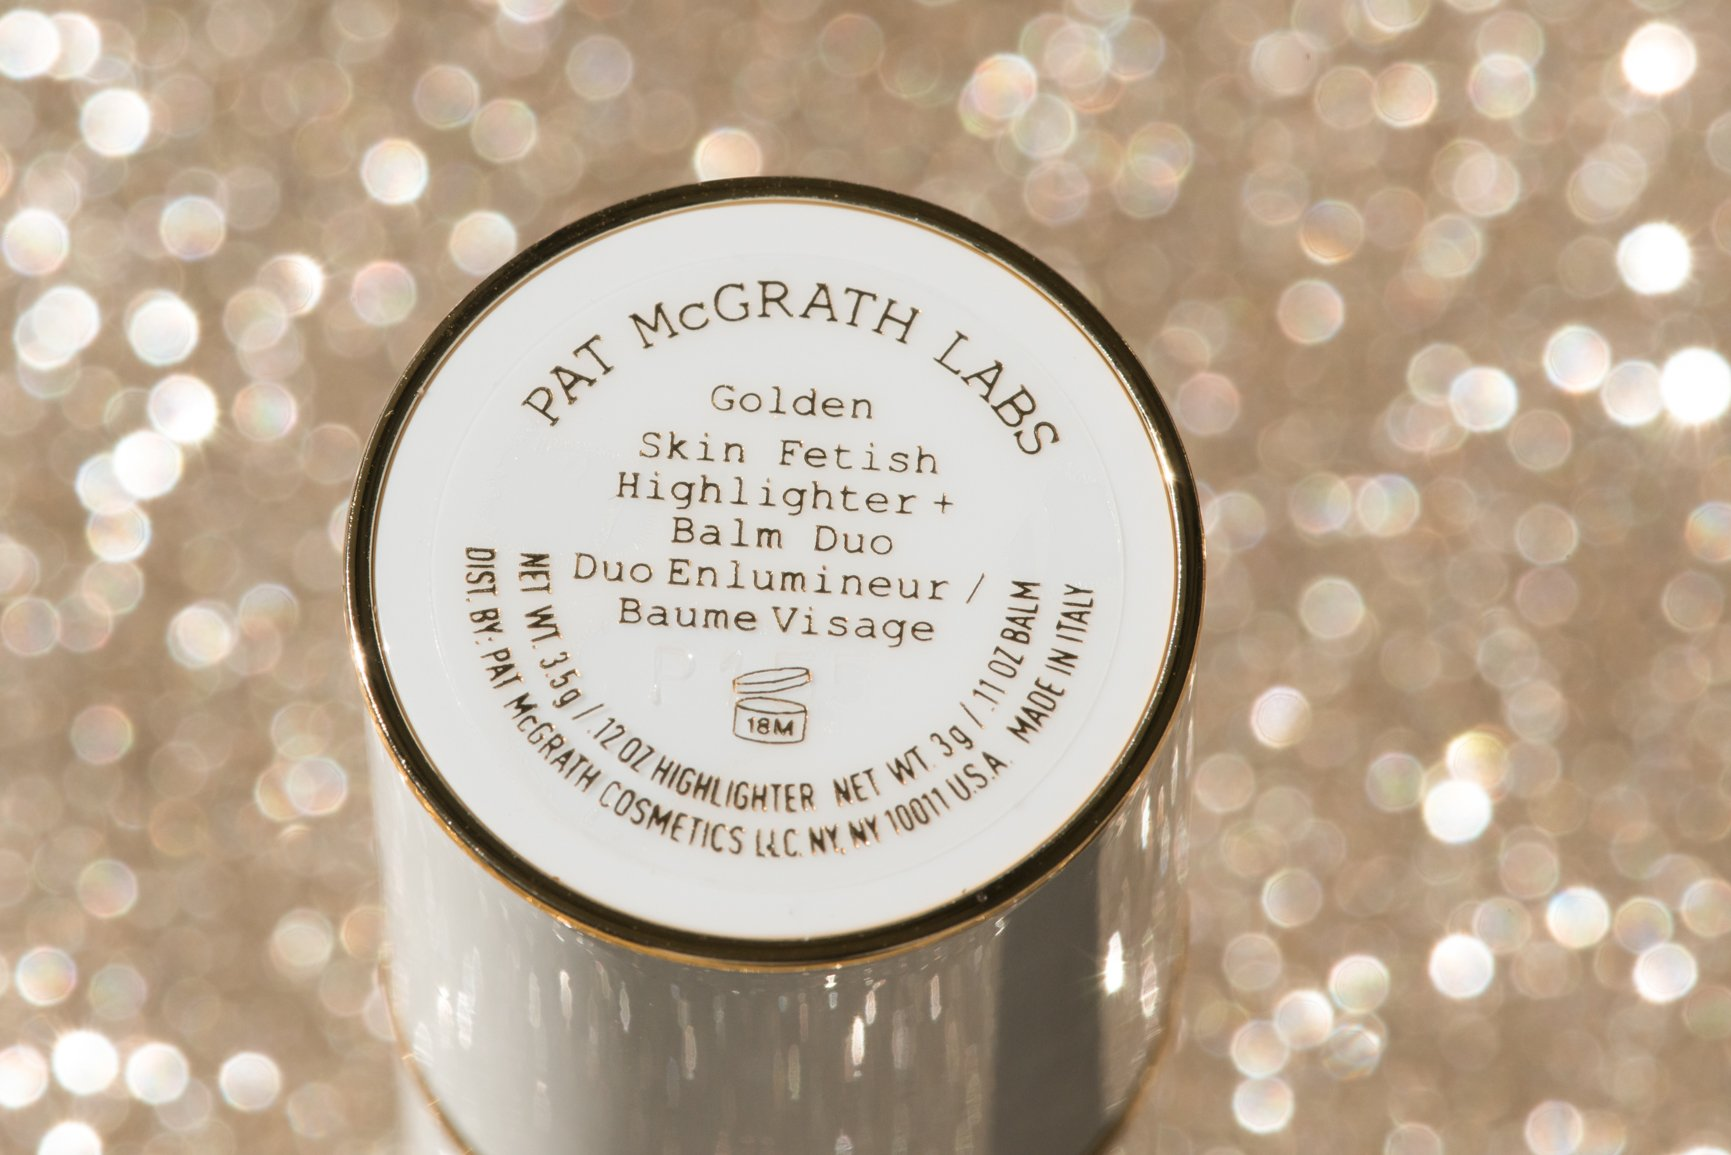 sunkissedblush-pat-mcgrath-labs-Highlighter-Balm-Duo-skin-fetish (8 of 12)